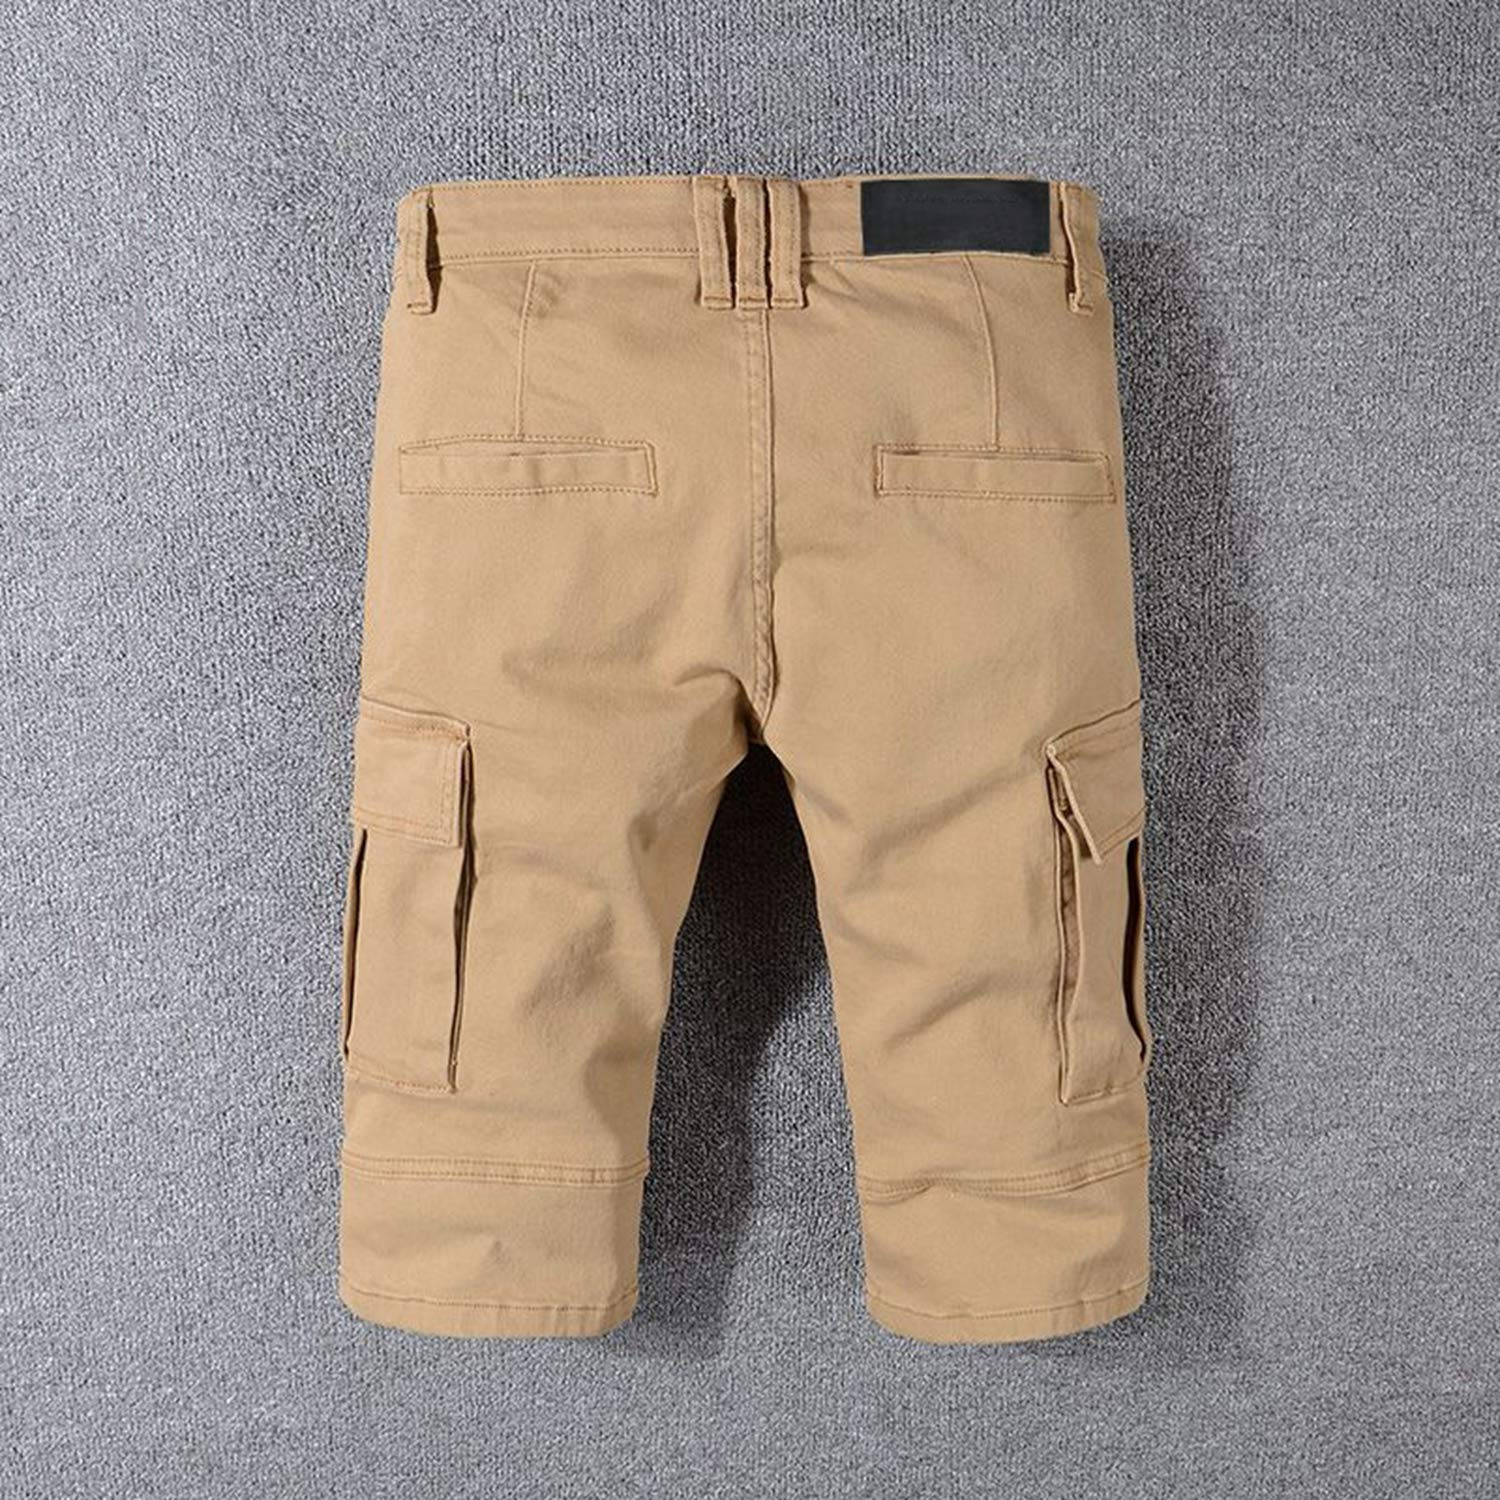 Men Skinny Jeans Shorts Khaki Mens Runway Slim Racer Jean Short Motorcycle Hiphop